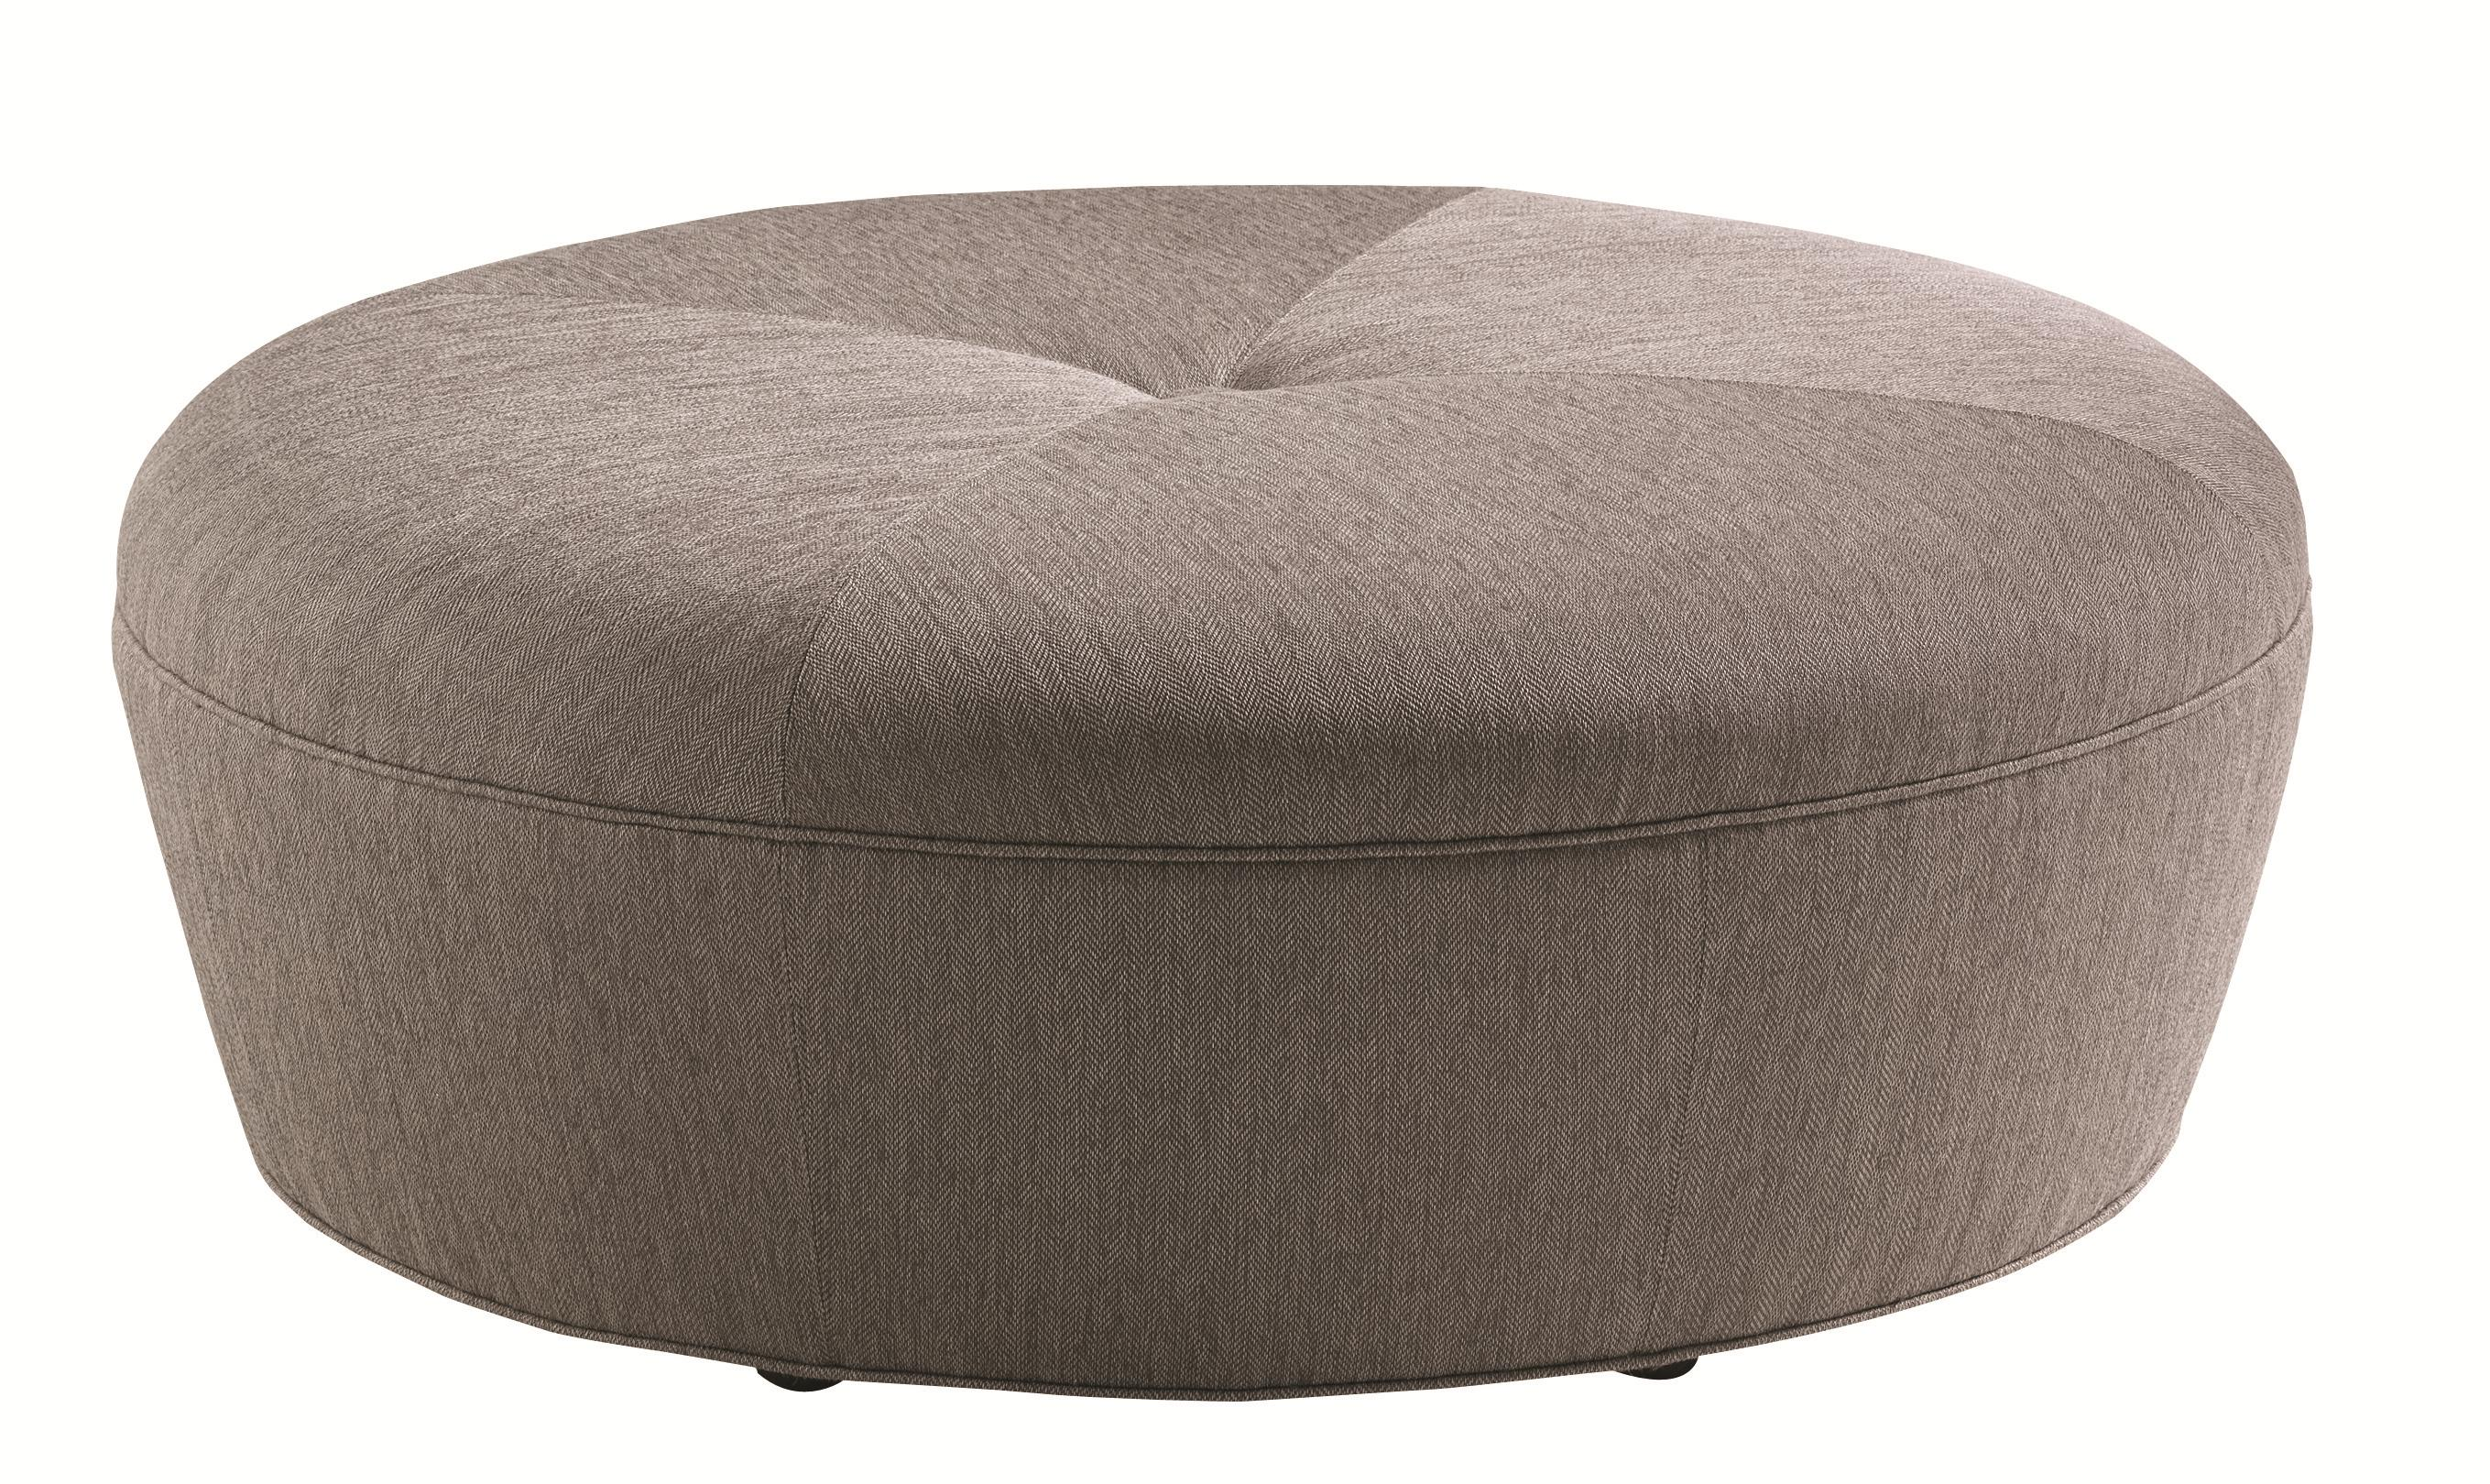 Carrera Claudia Cocktail Ottoman by Lexington at Baer's Furniture